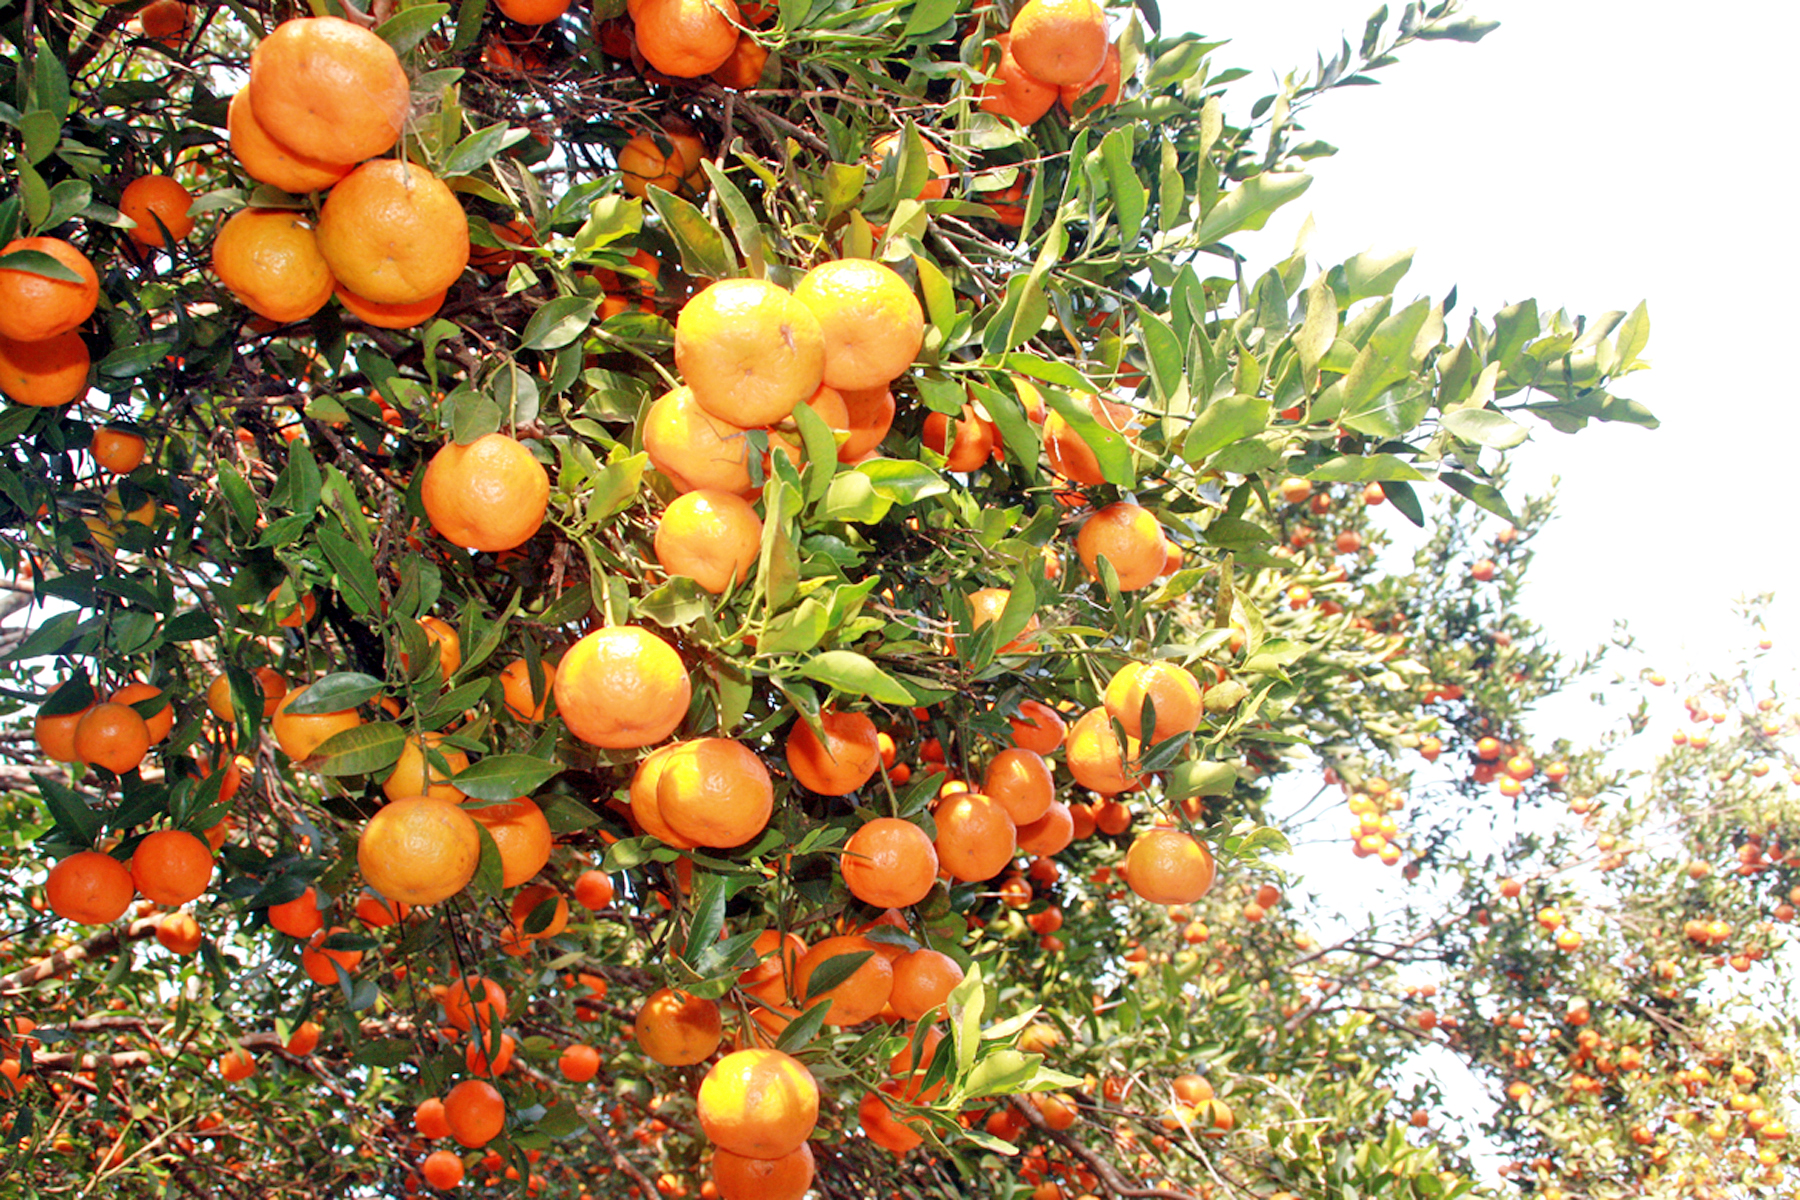 Ripe oranges in Darechok Tamin of Chitwan district have changed the life of farmers after the area was declared an orange pocket area, on Thursday, December 24, 2015. Photo: RSS